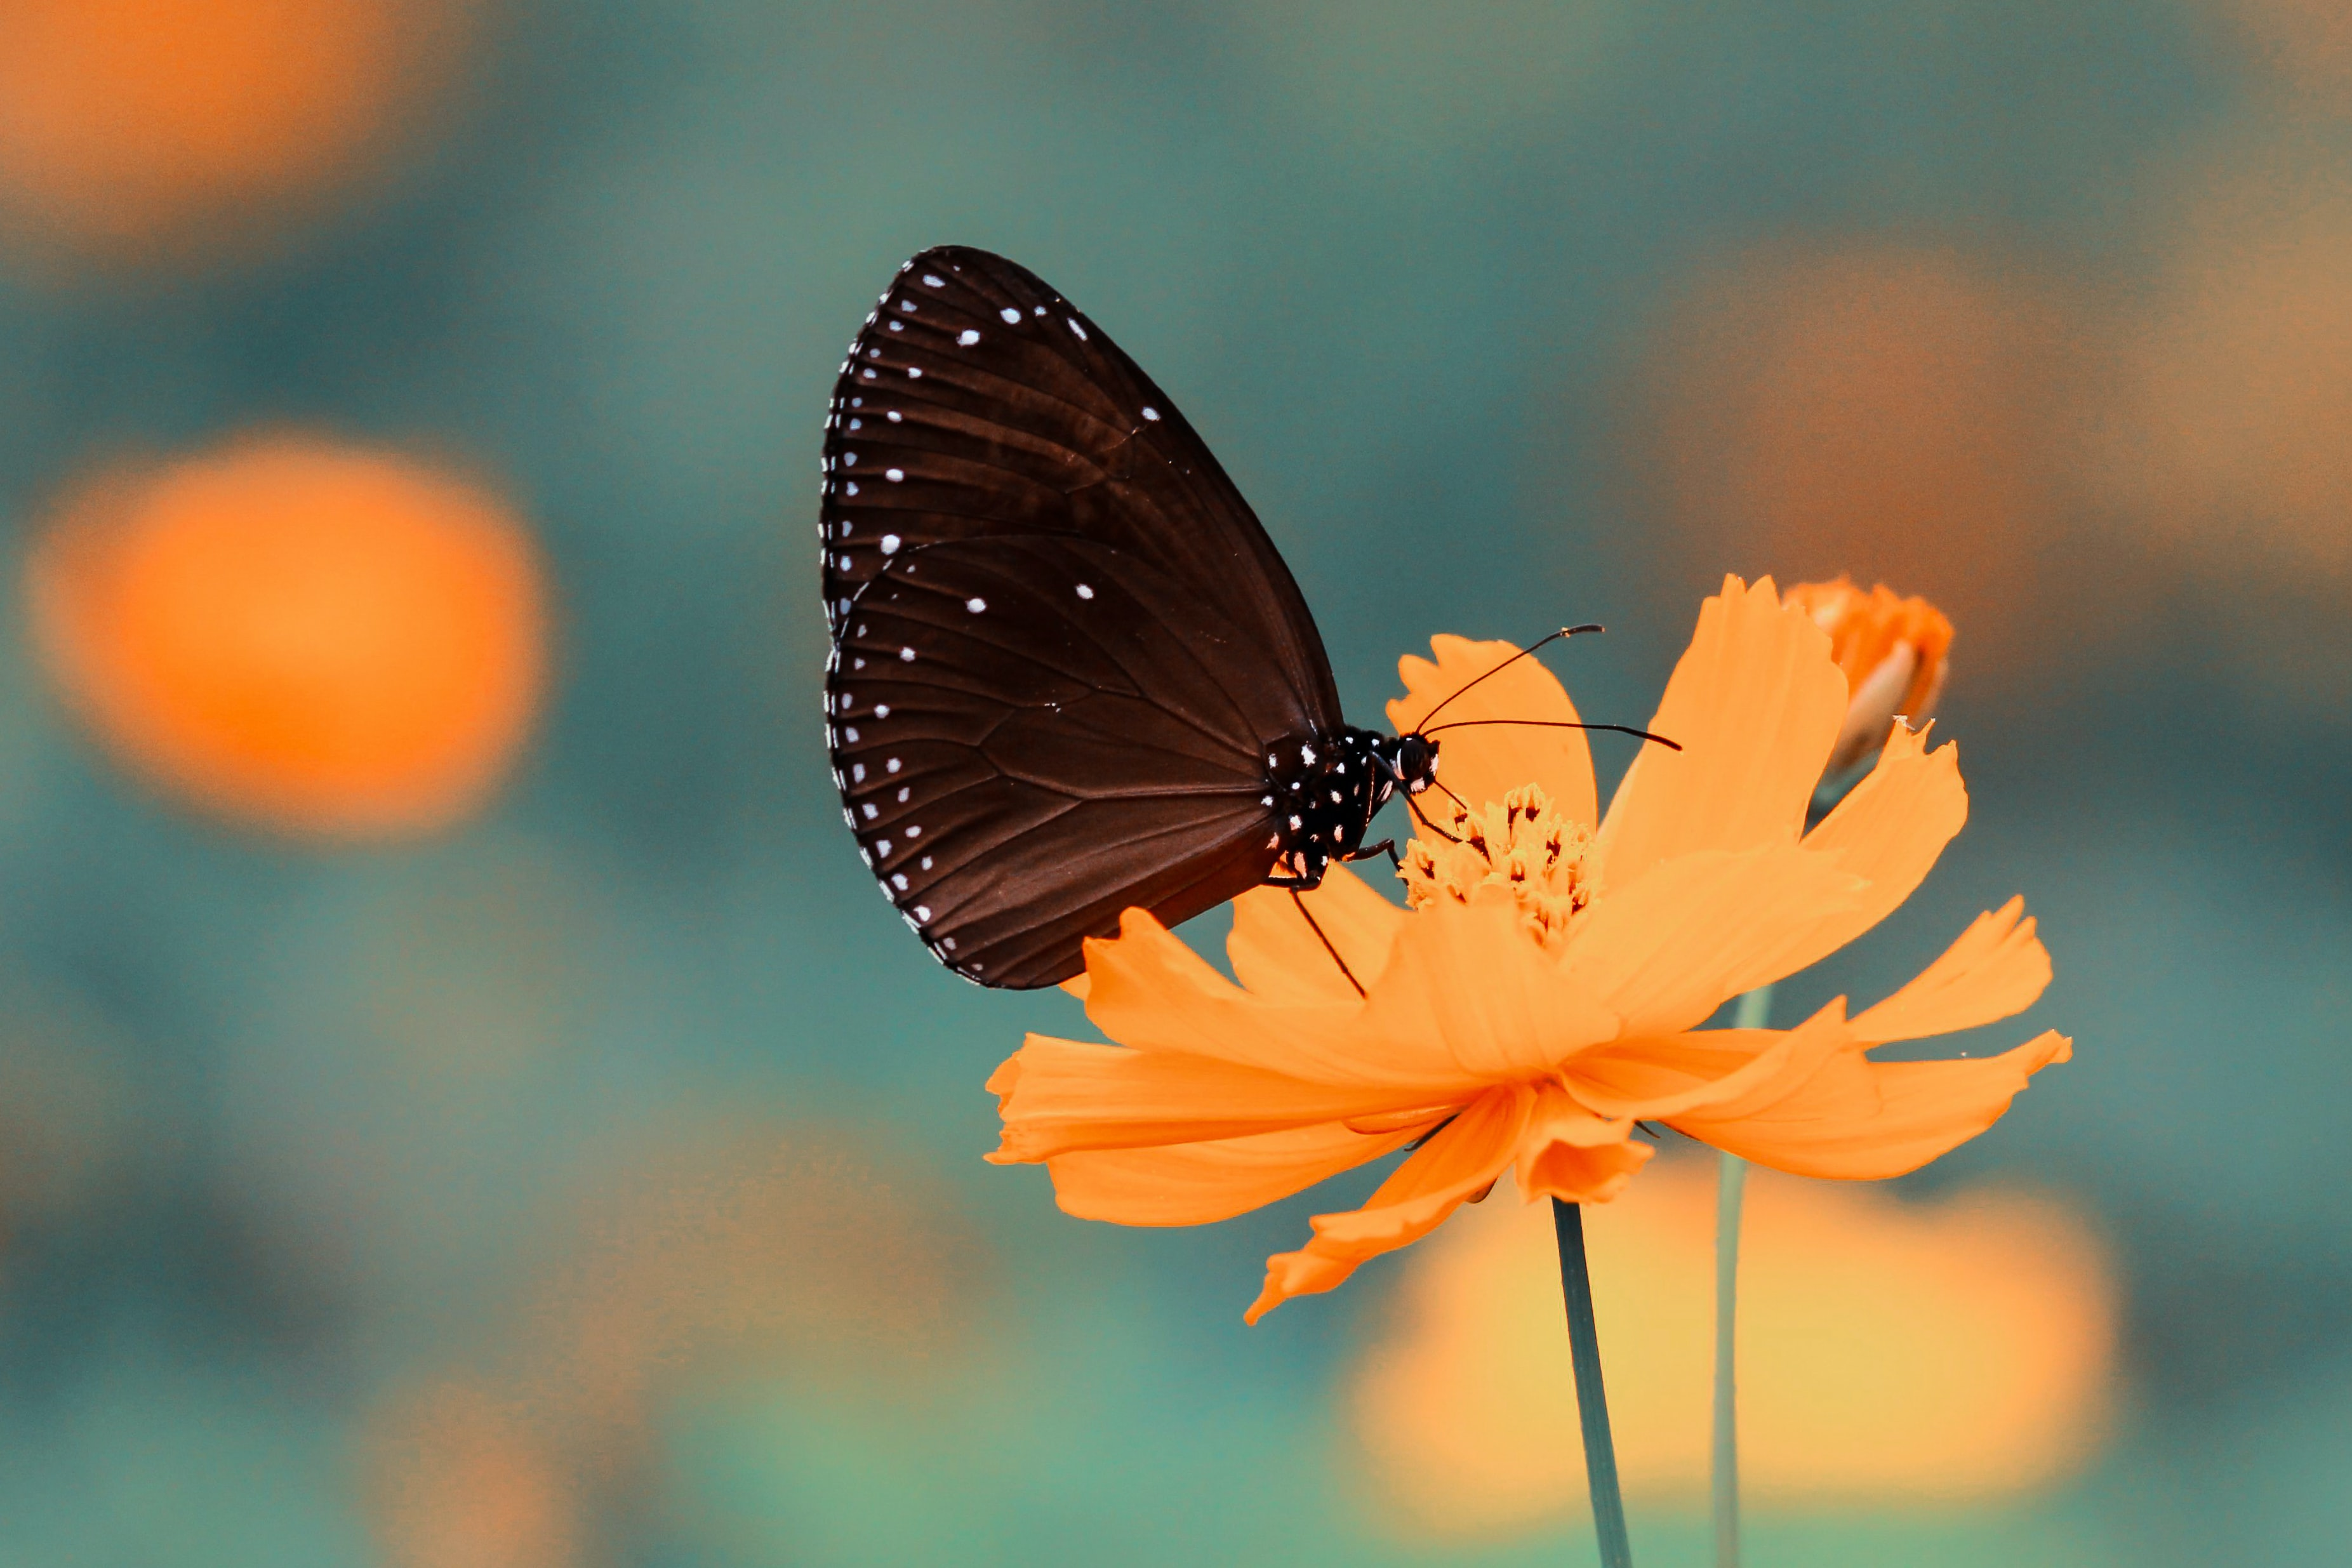 A black butterfly on a bright orange flower